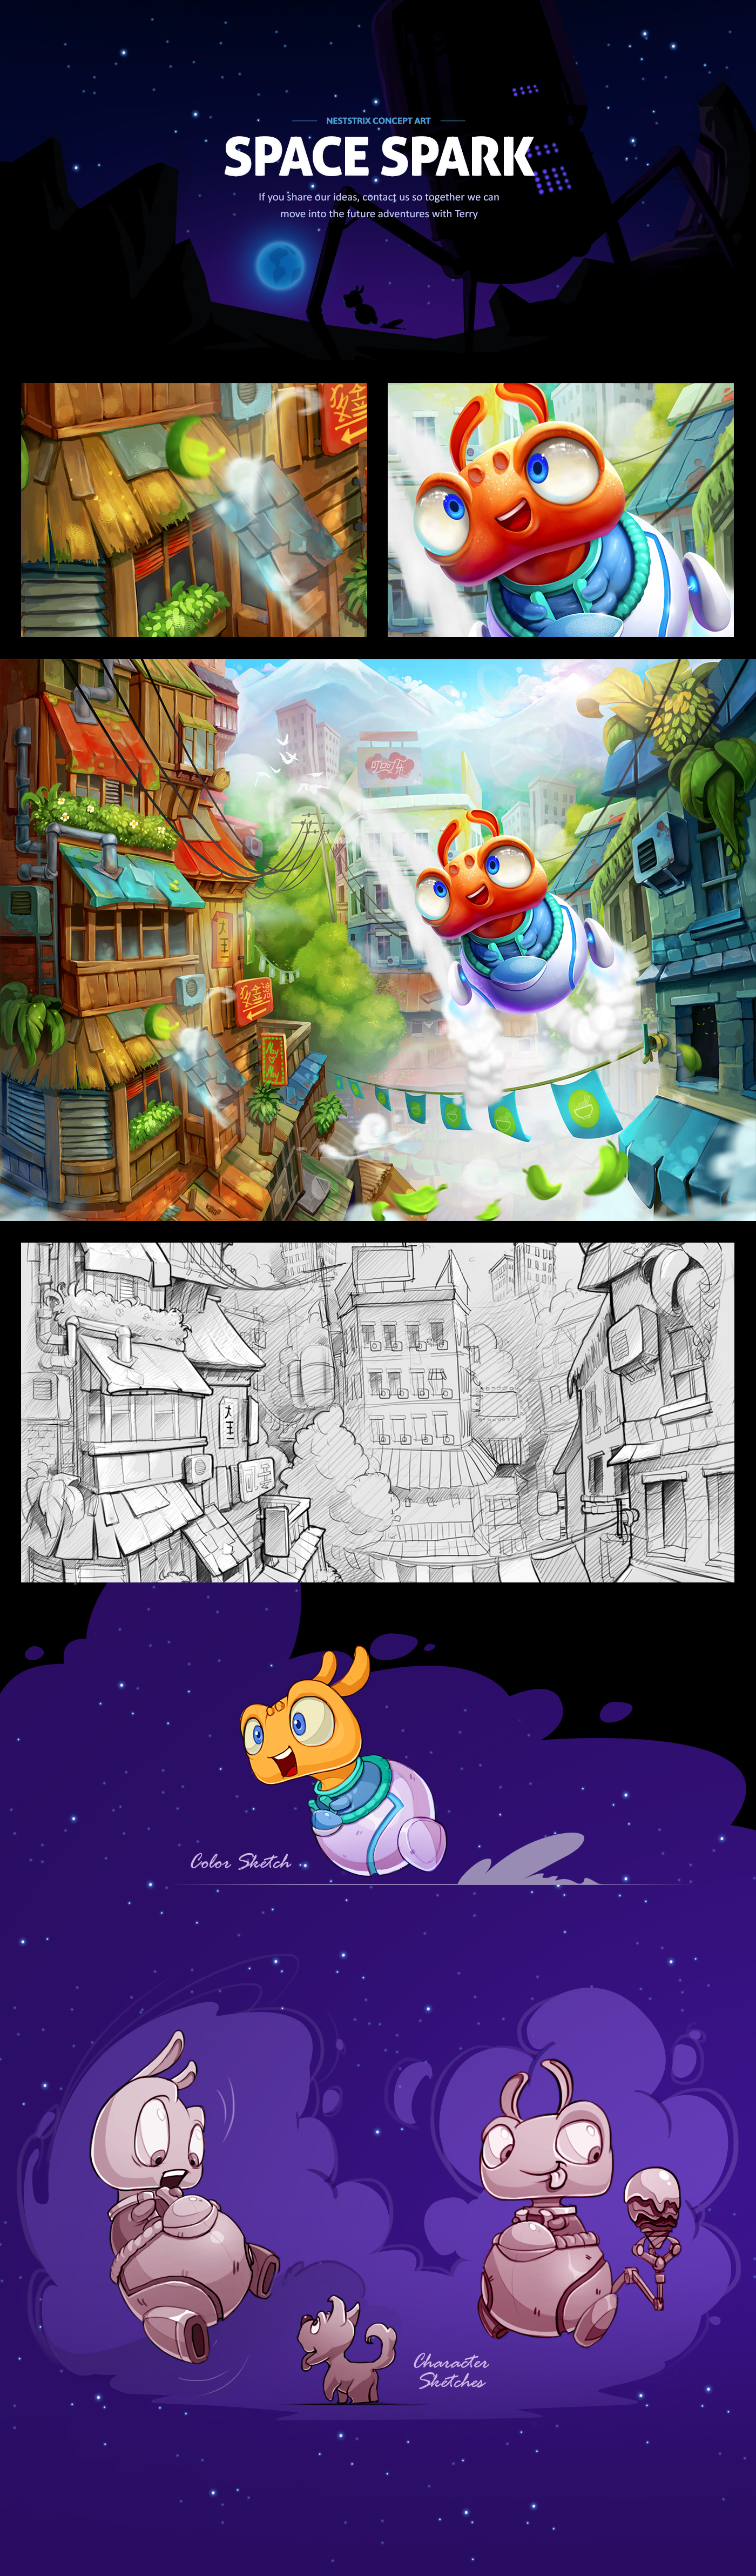 Character game sketch concept video game CG cartoon Game Art mobile game alien city